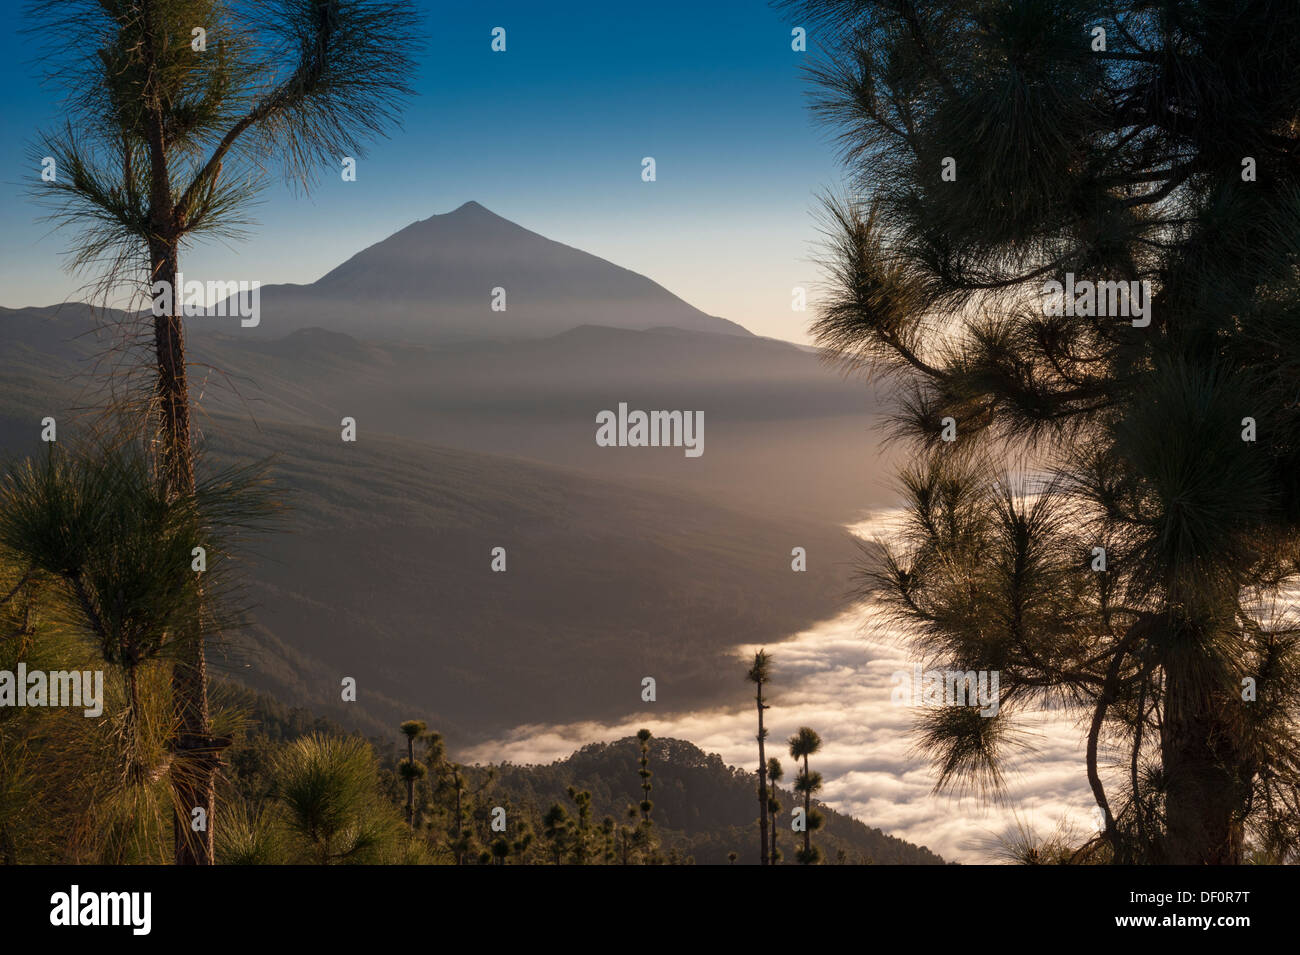 The huge stratovolcano of El Teide, Tenerife, above a sea of clouds (mar de nubes) over the Orotava Valley - Stock Image